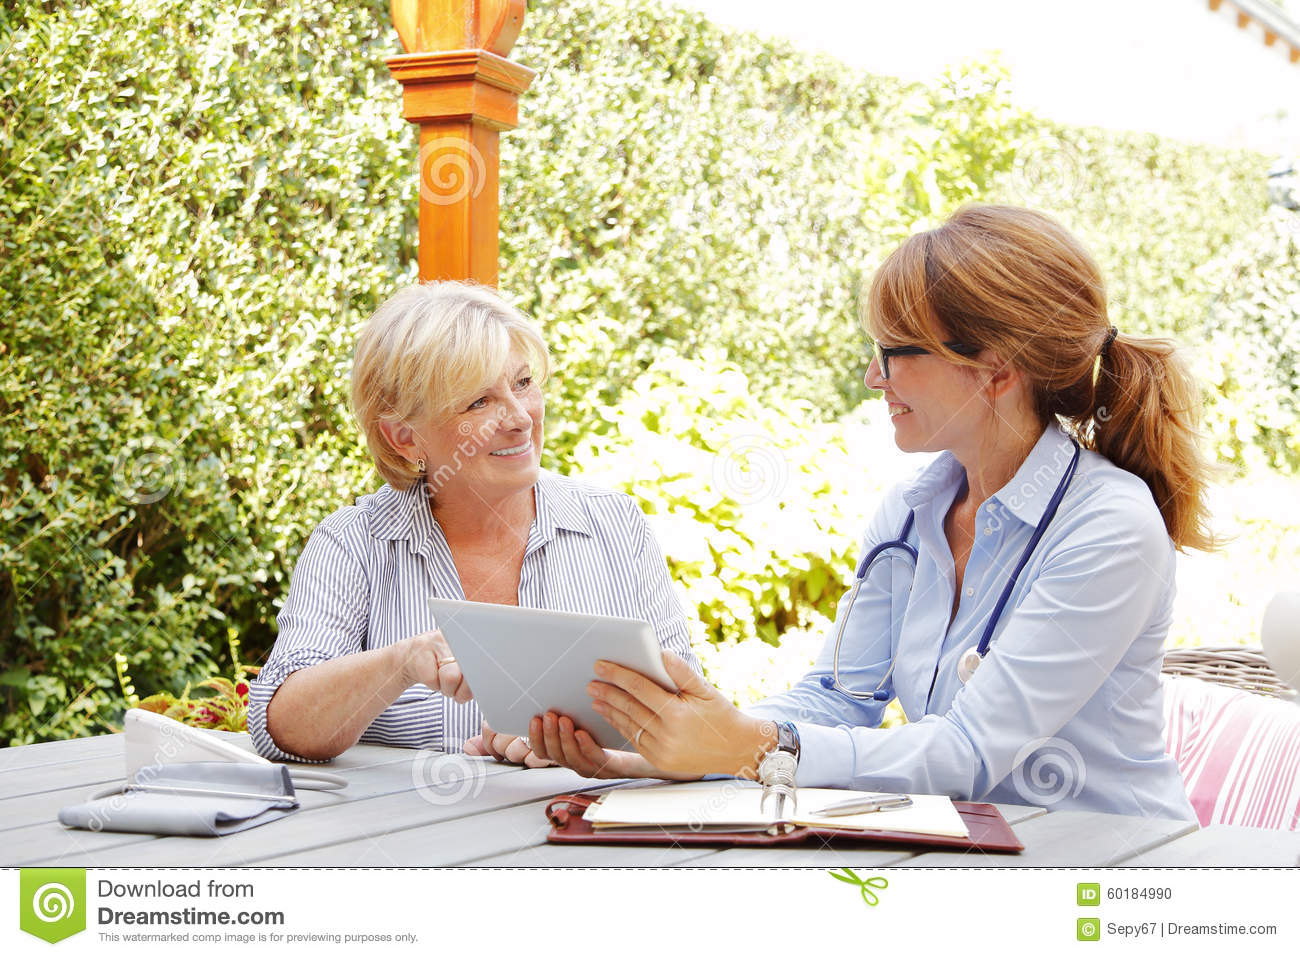 Home Healthcare Stock Photo Image 60184990